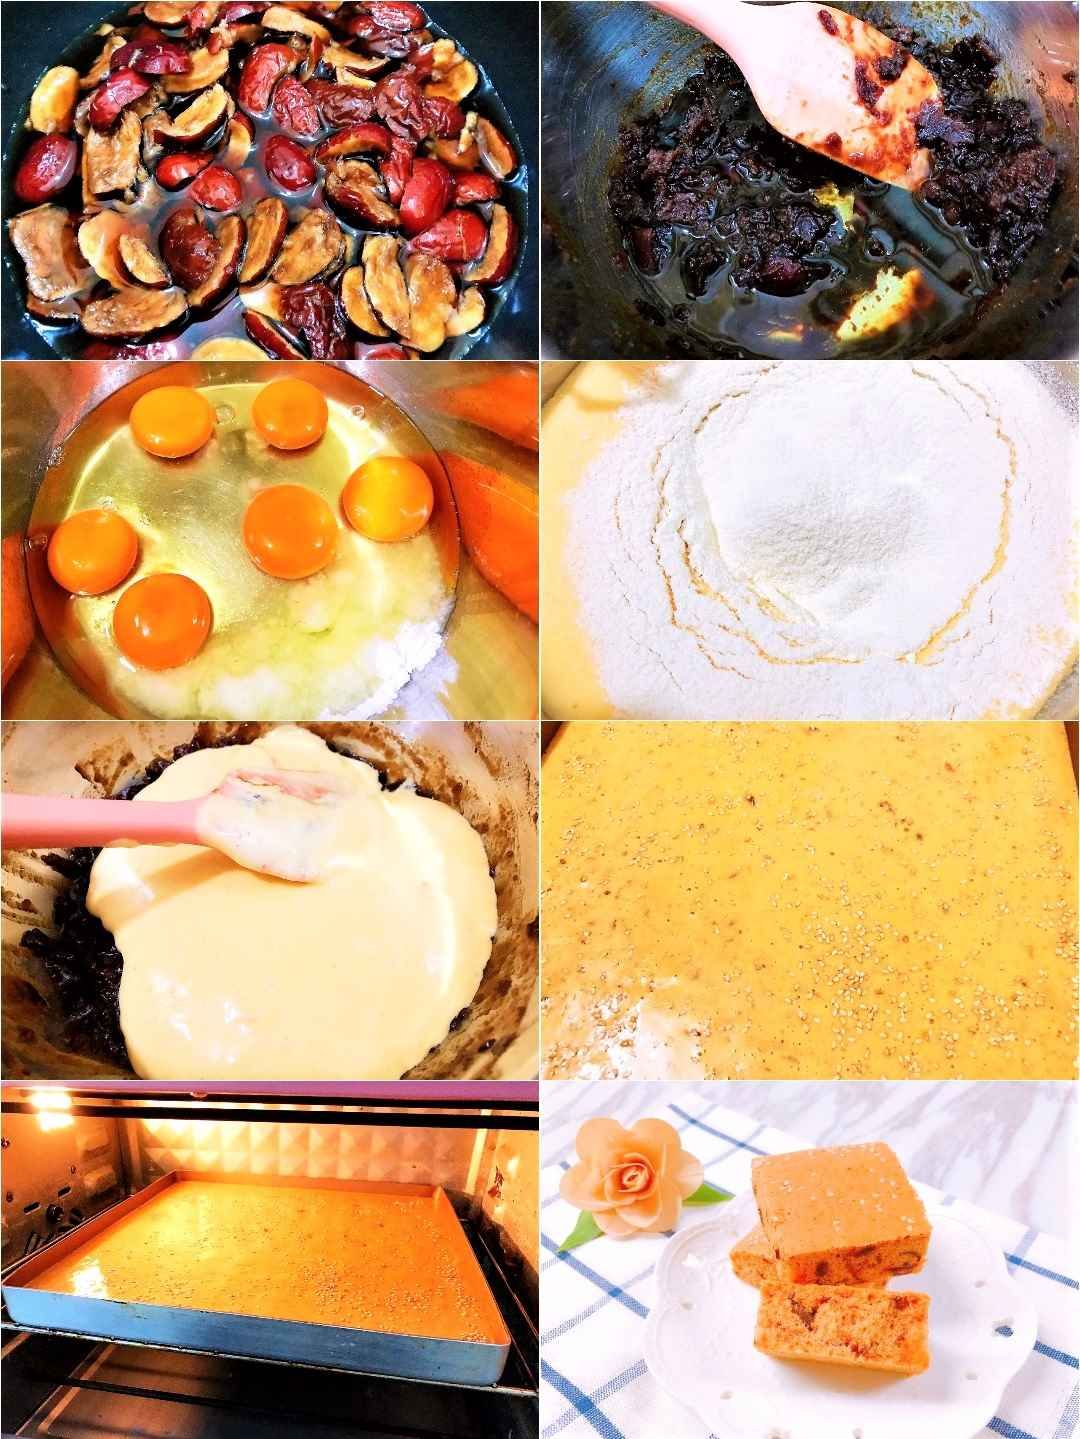 Chinese red date cake recipe with pictures step by step